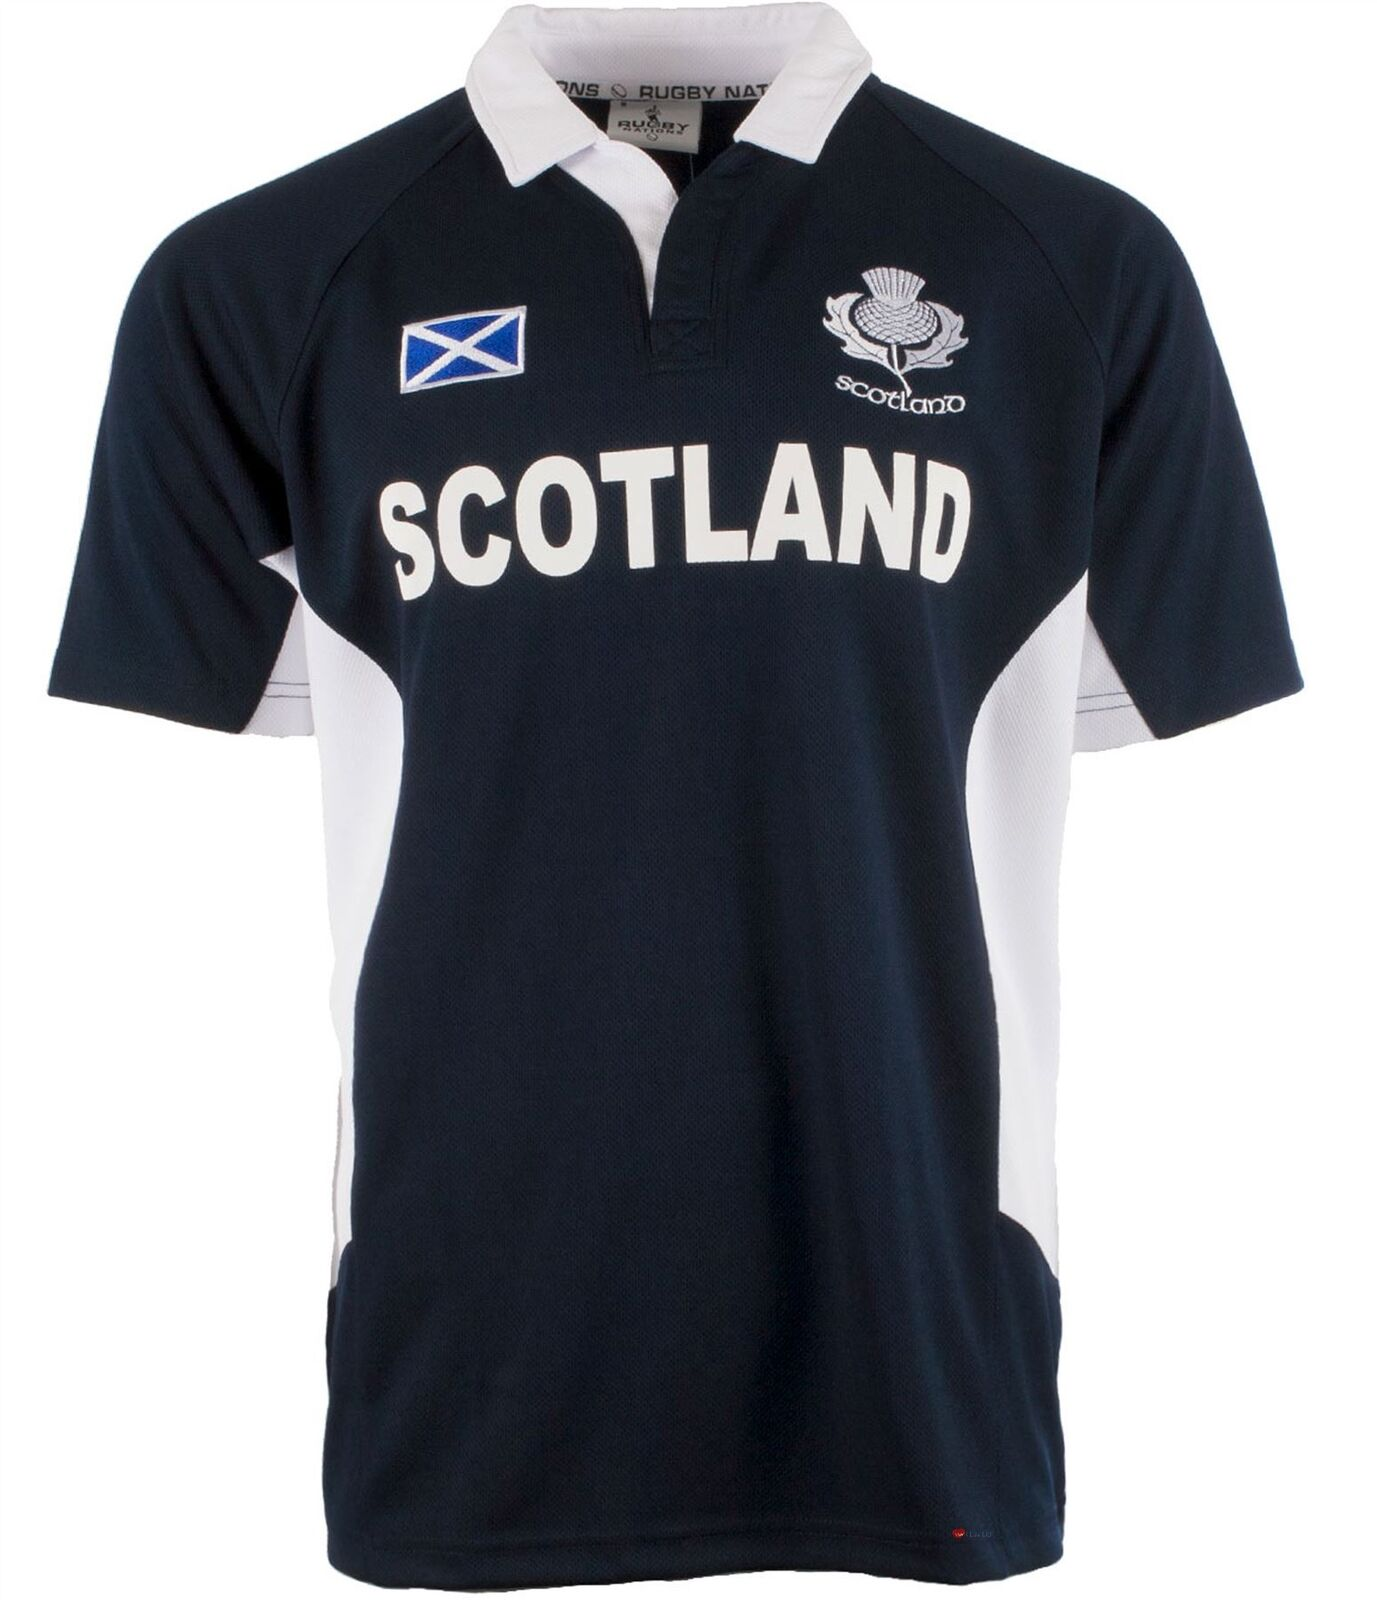 Gents Rugby Nations Rugby Shirt With Thistle Design In Navy Size X-Large